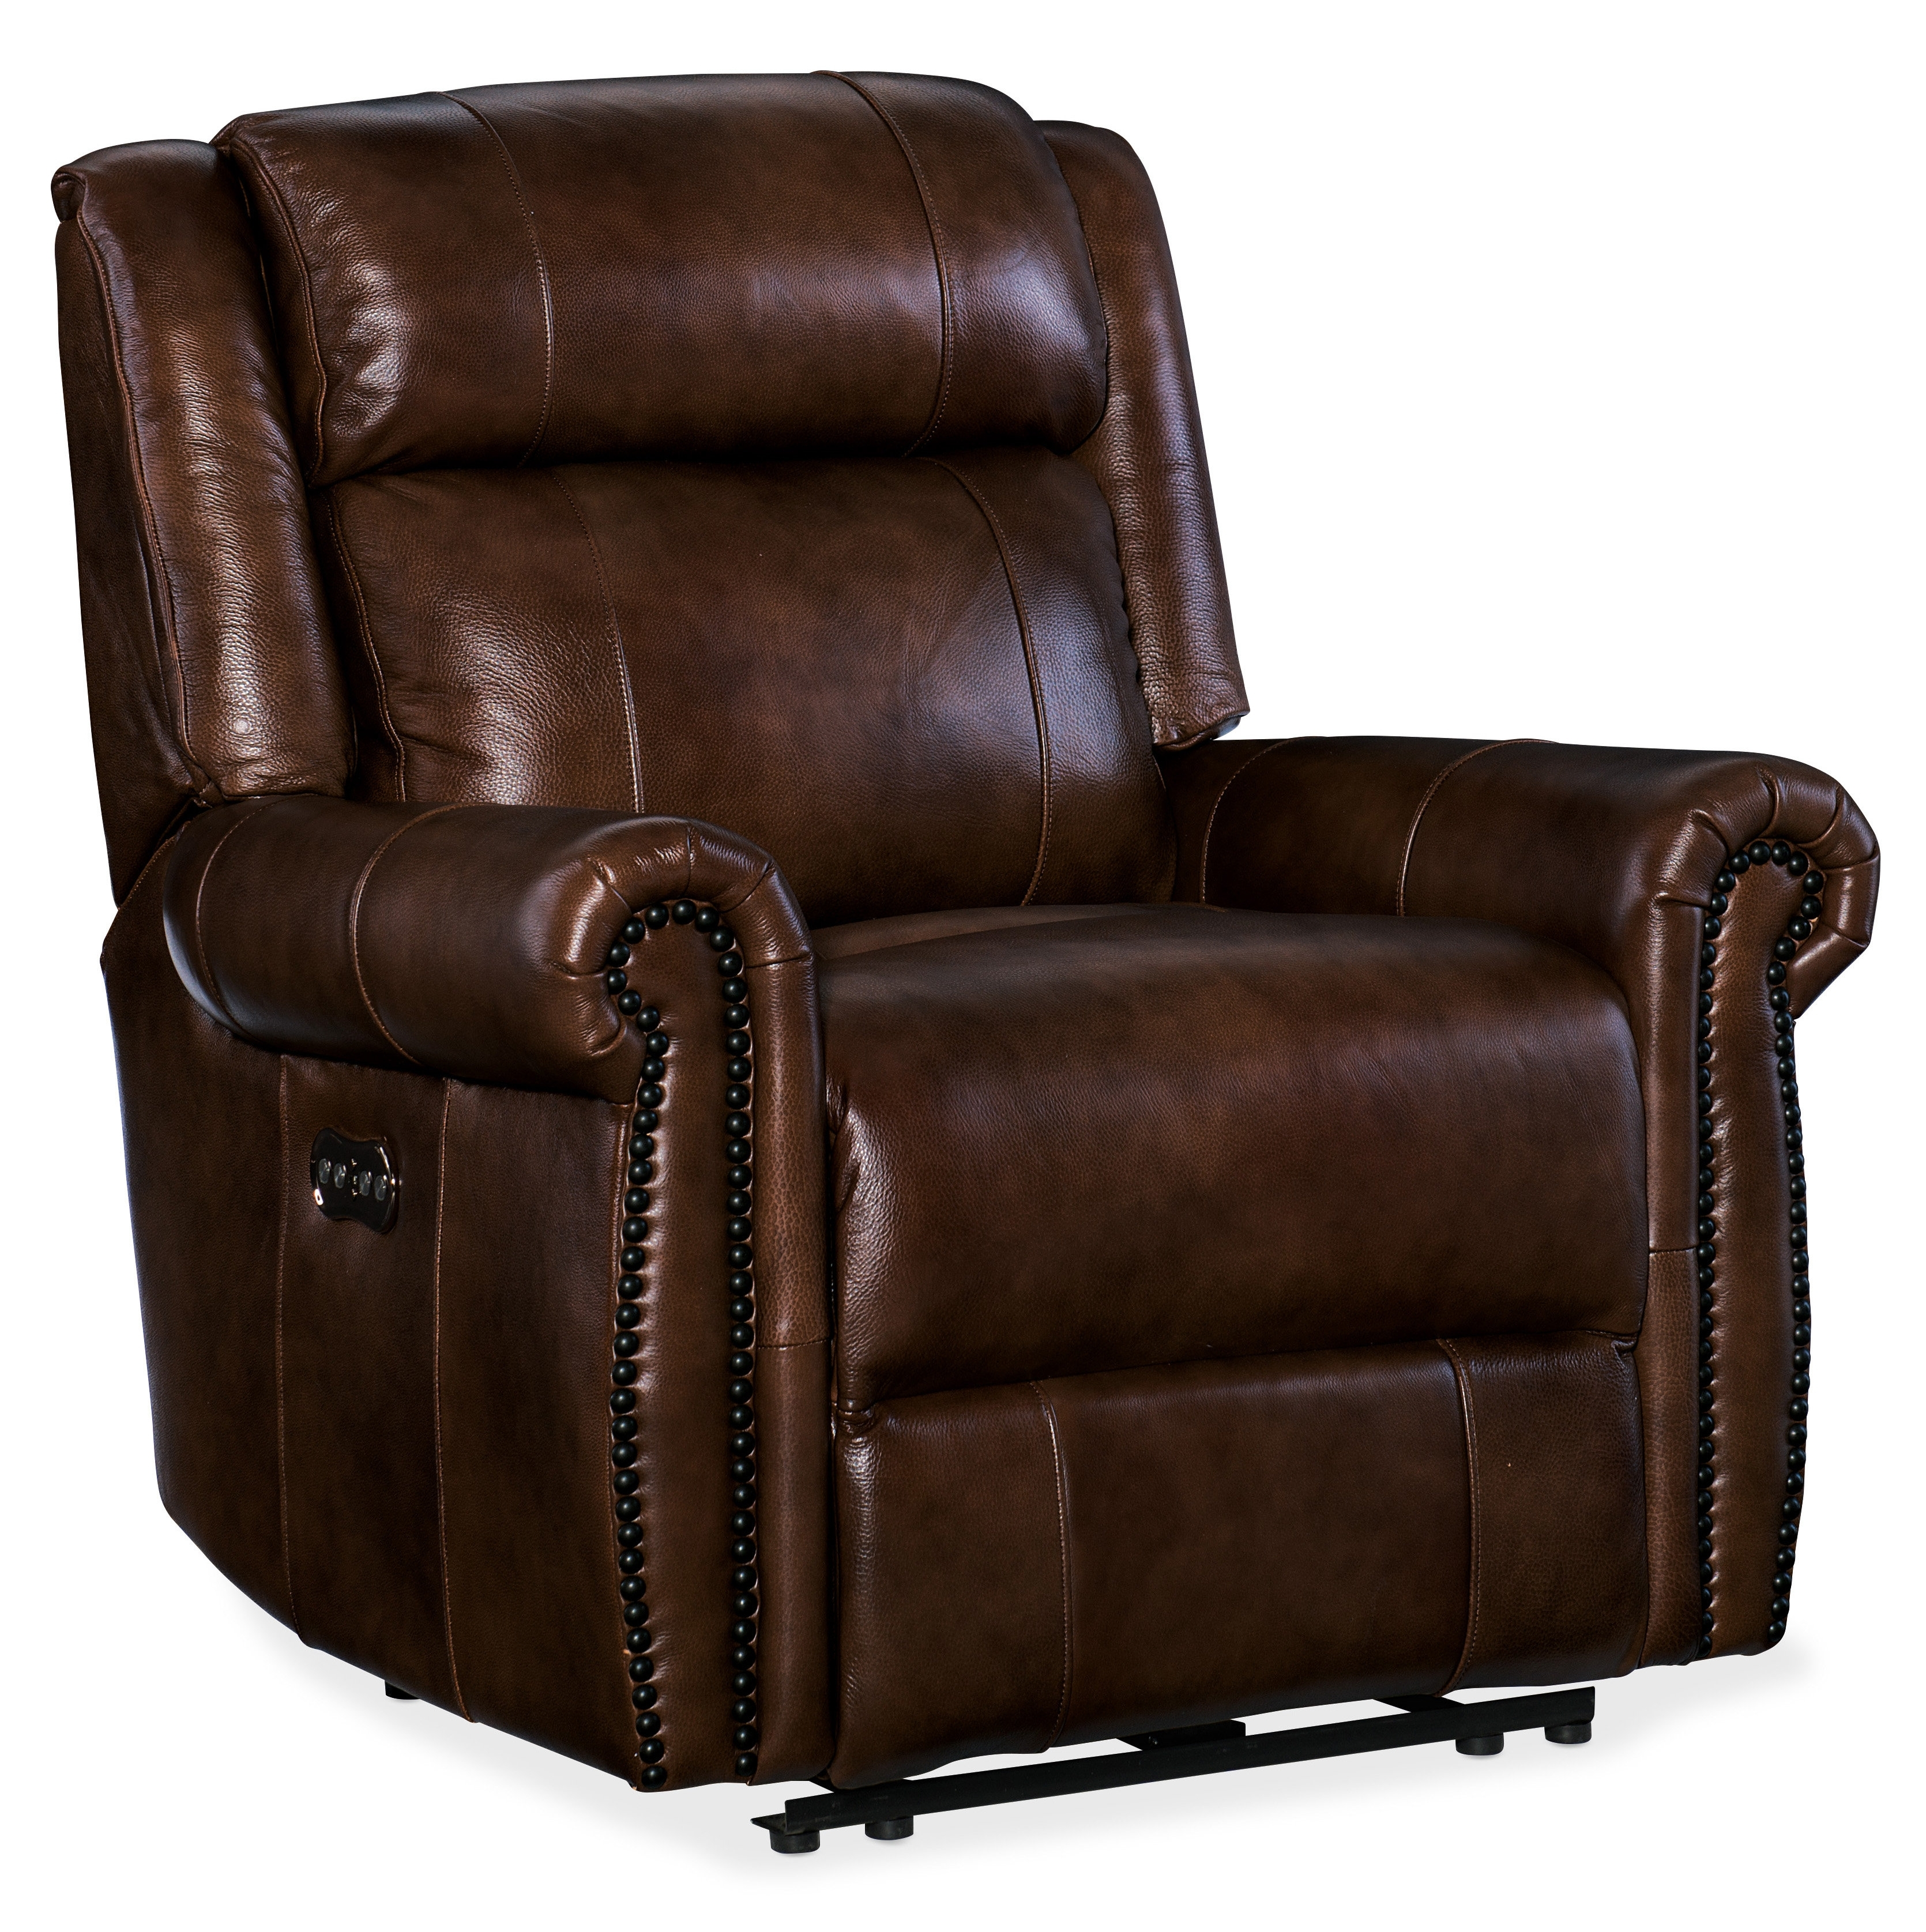 Hooker Furniture Esme Leather Power Recliner With Power Headrest Regarding Clyde Grey Leather 3 Piece Power Reclining Sectionals With Pwr Hdrst & Usb (Image 17 of 25)